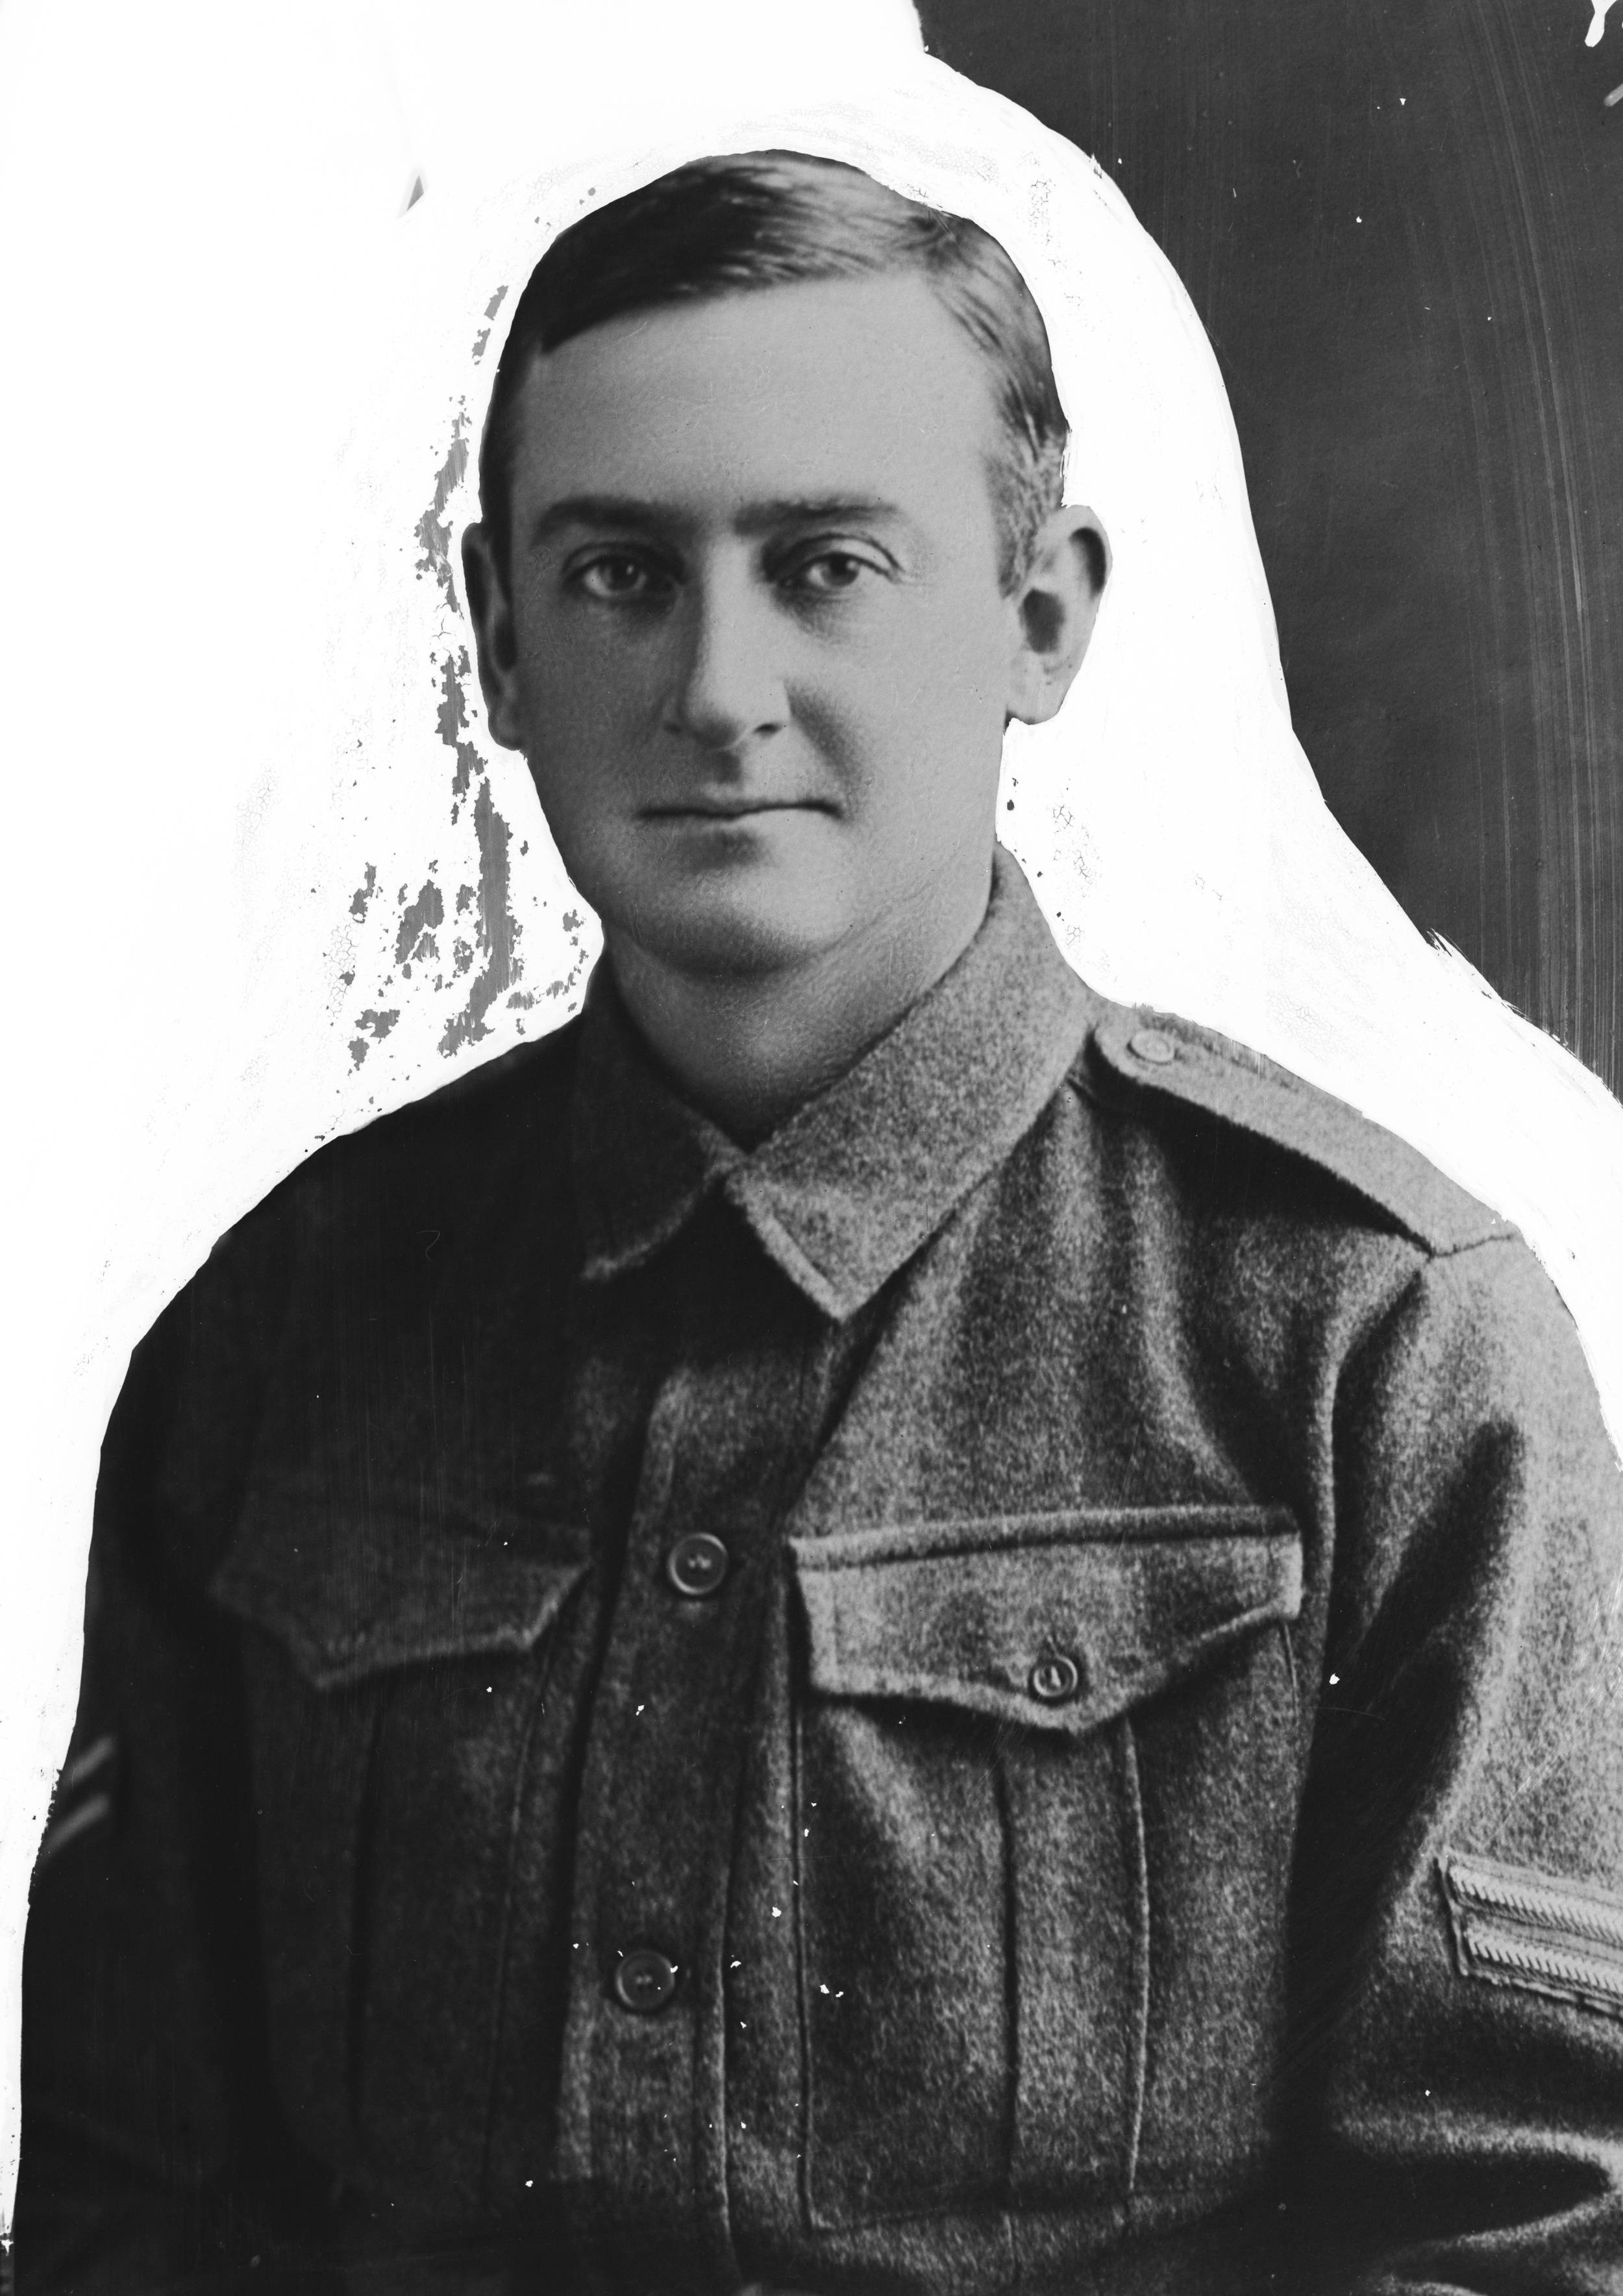 Photographed at the Dease Studio, 117 Barrack Street Perth WA Image courtesy of the State Library of Western Australia: 108215PD